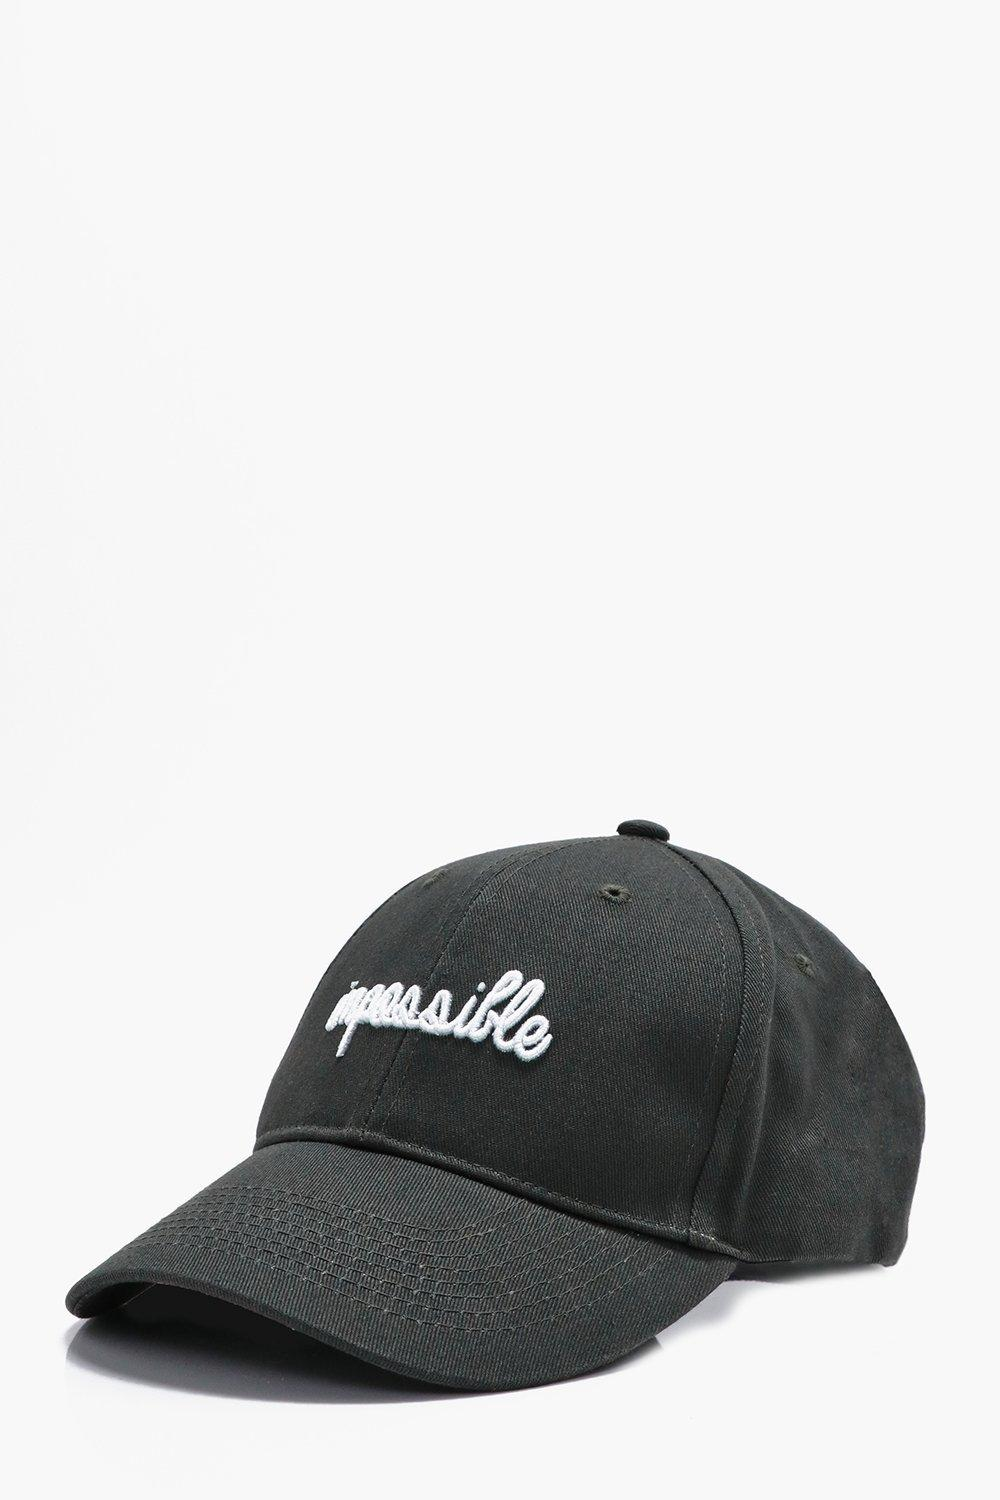 Embroidered Cap - charcoal - Impossible Embroidere